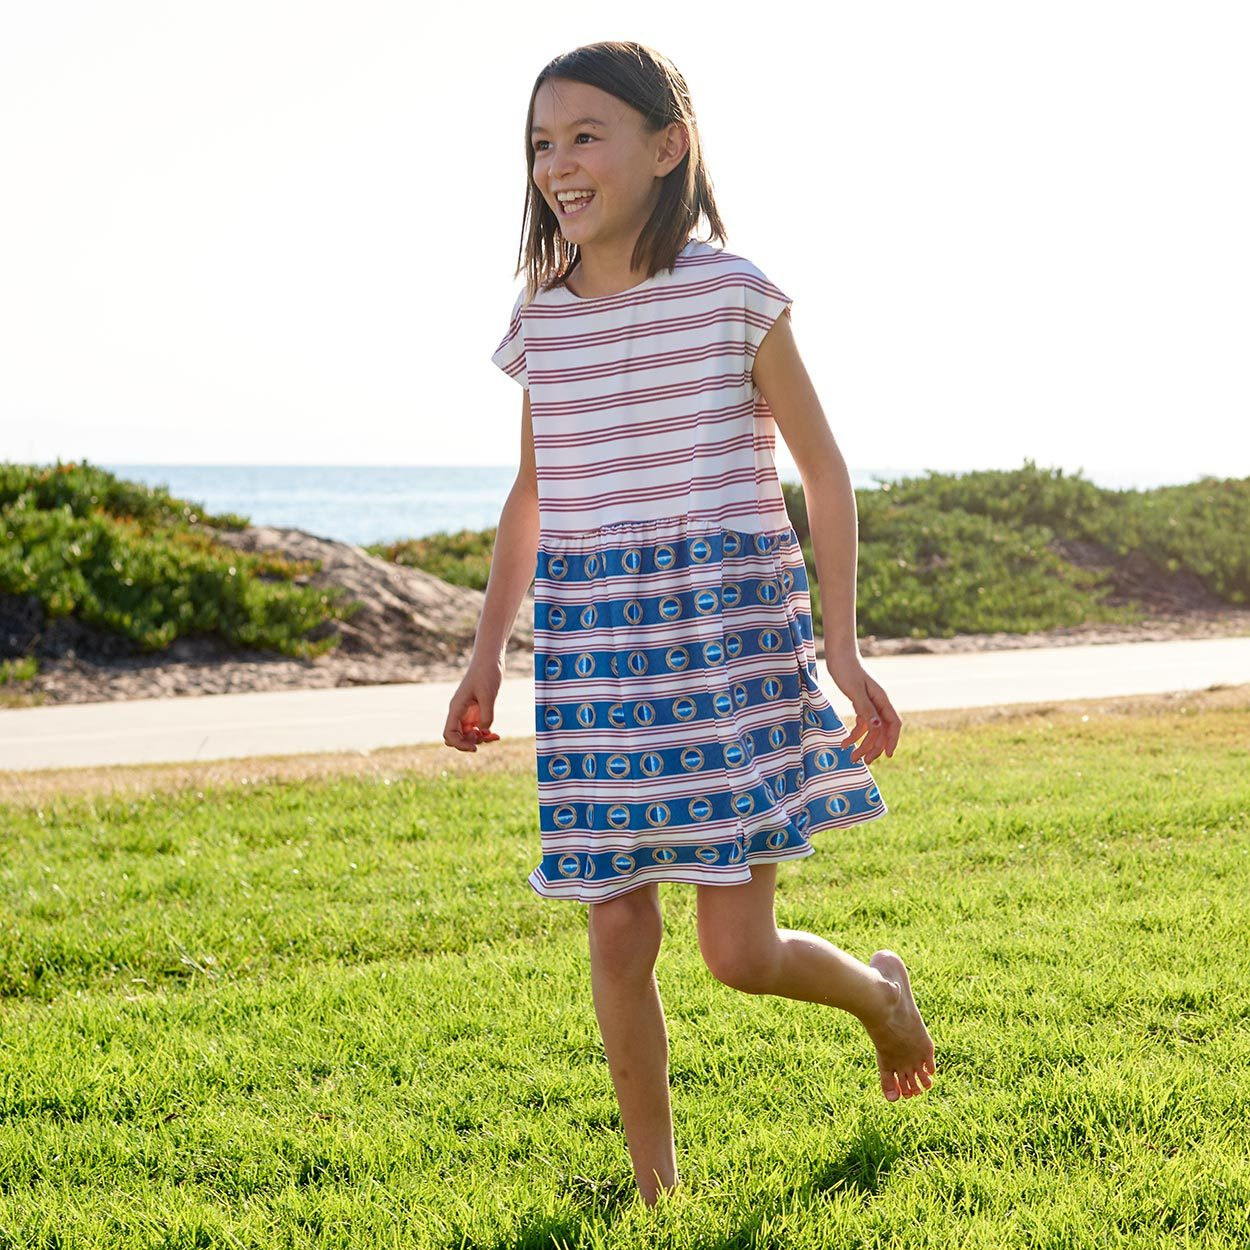 Red Stripe Dress Upf50 Size 2 12 Capsleeve Girl Smiling Running on the Grass Sunny Day Modern Mariner Sunpoplife